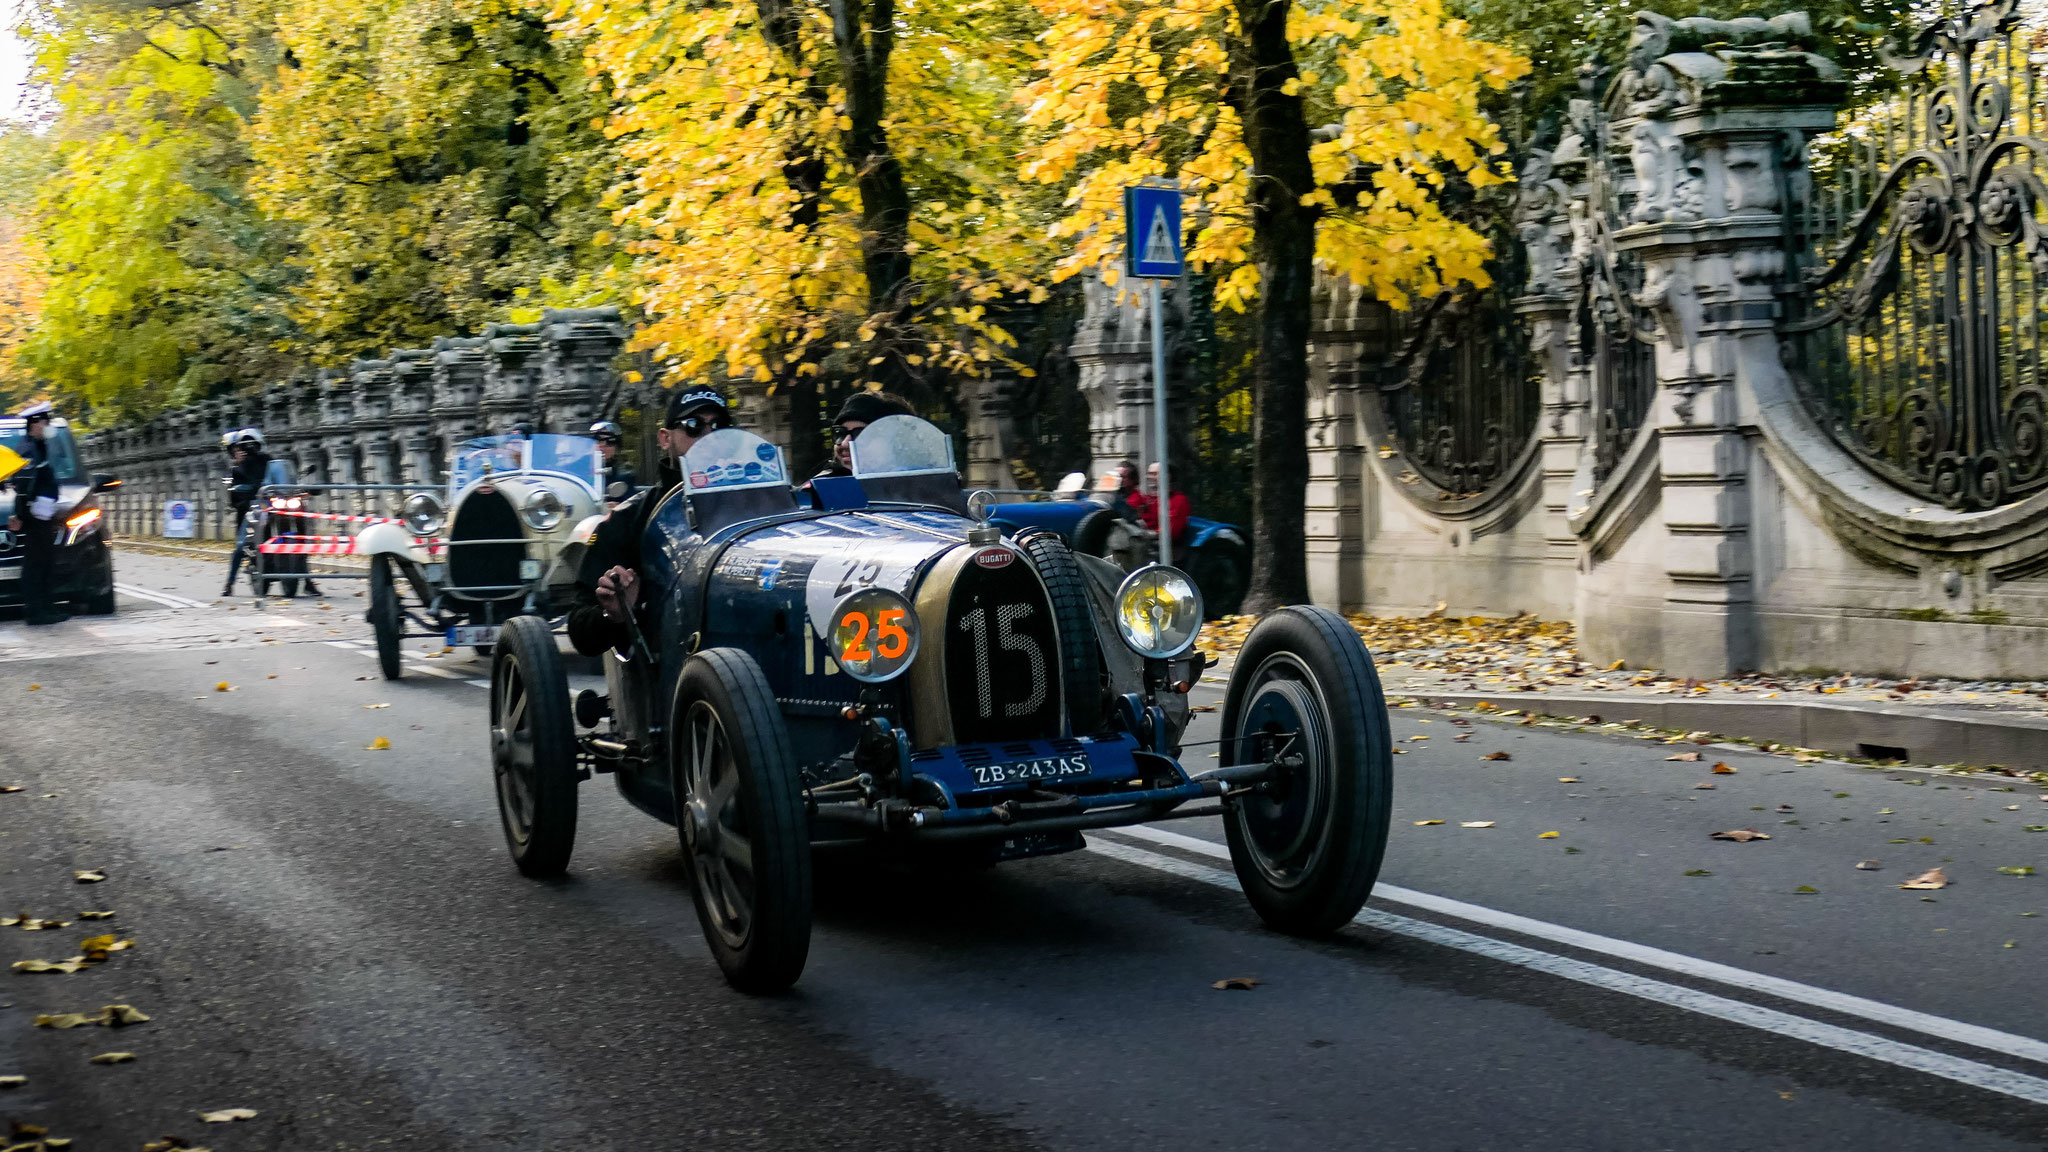 Bugatti Type 37 - ZB-243-AS (ITA)